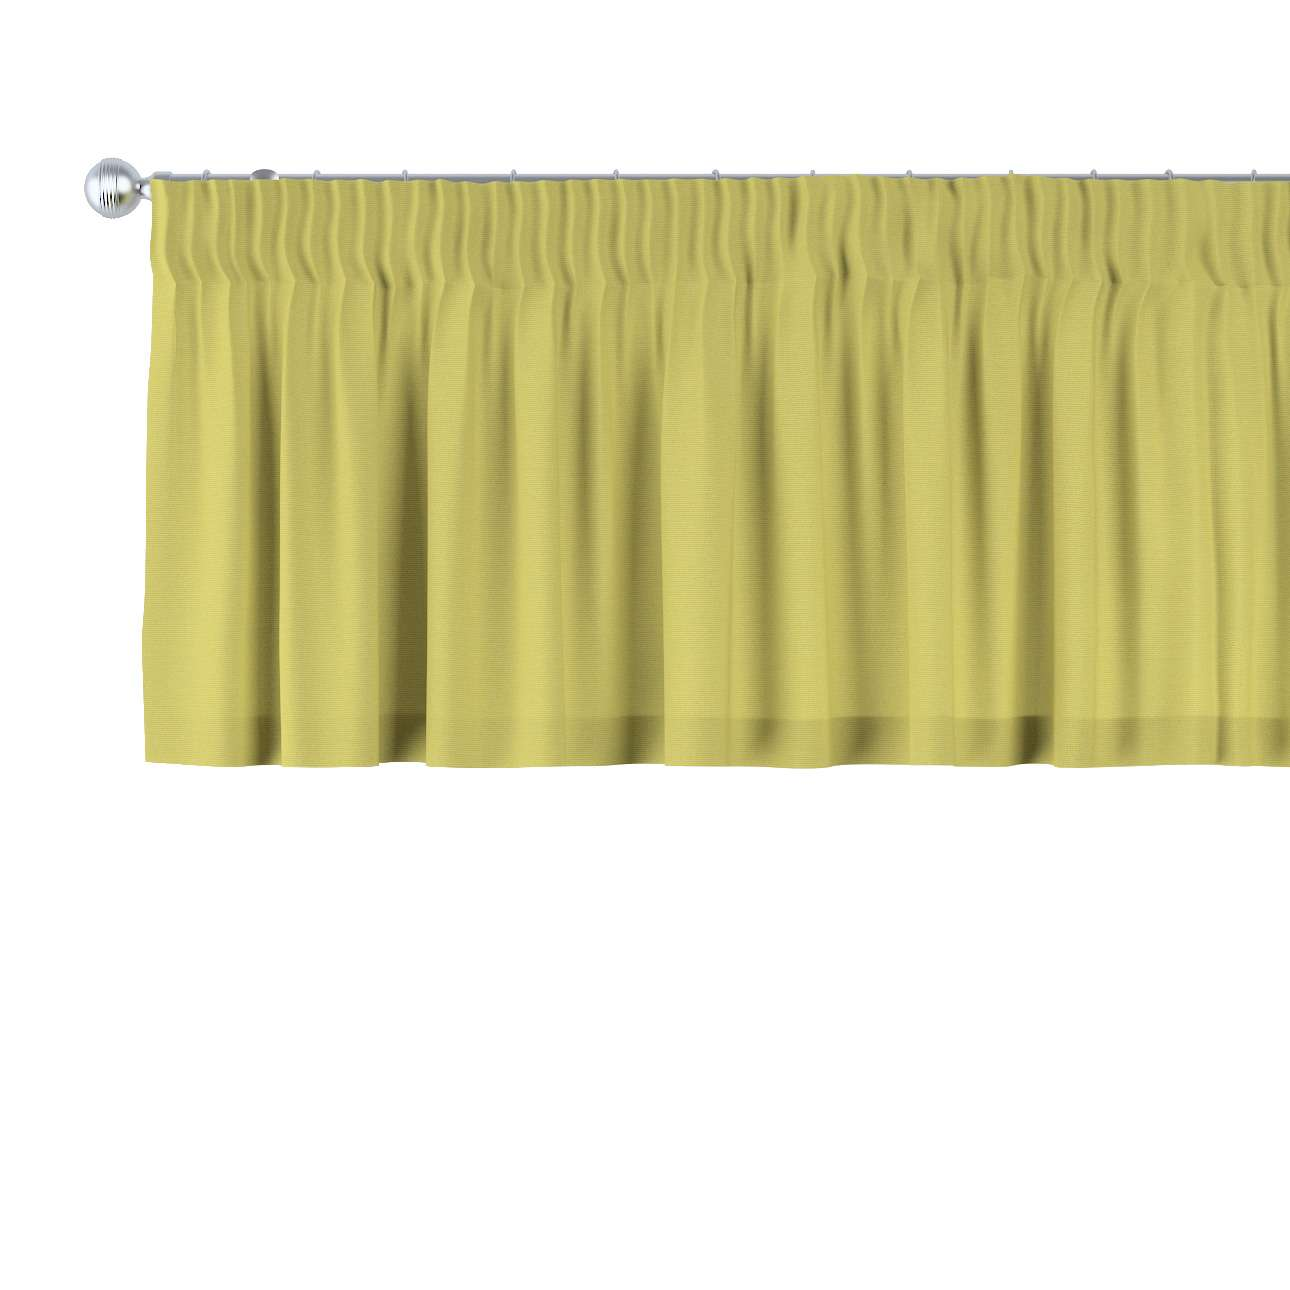 Pencil pleat pelmet 130 x 40 cm (51 x 16 inch) in collection Loneta , fabric: 133-23